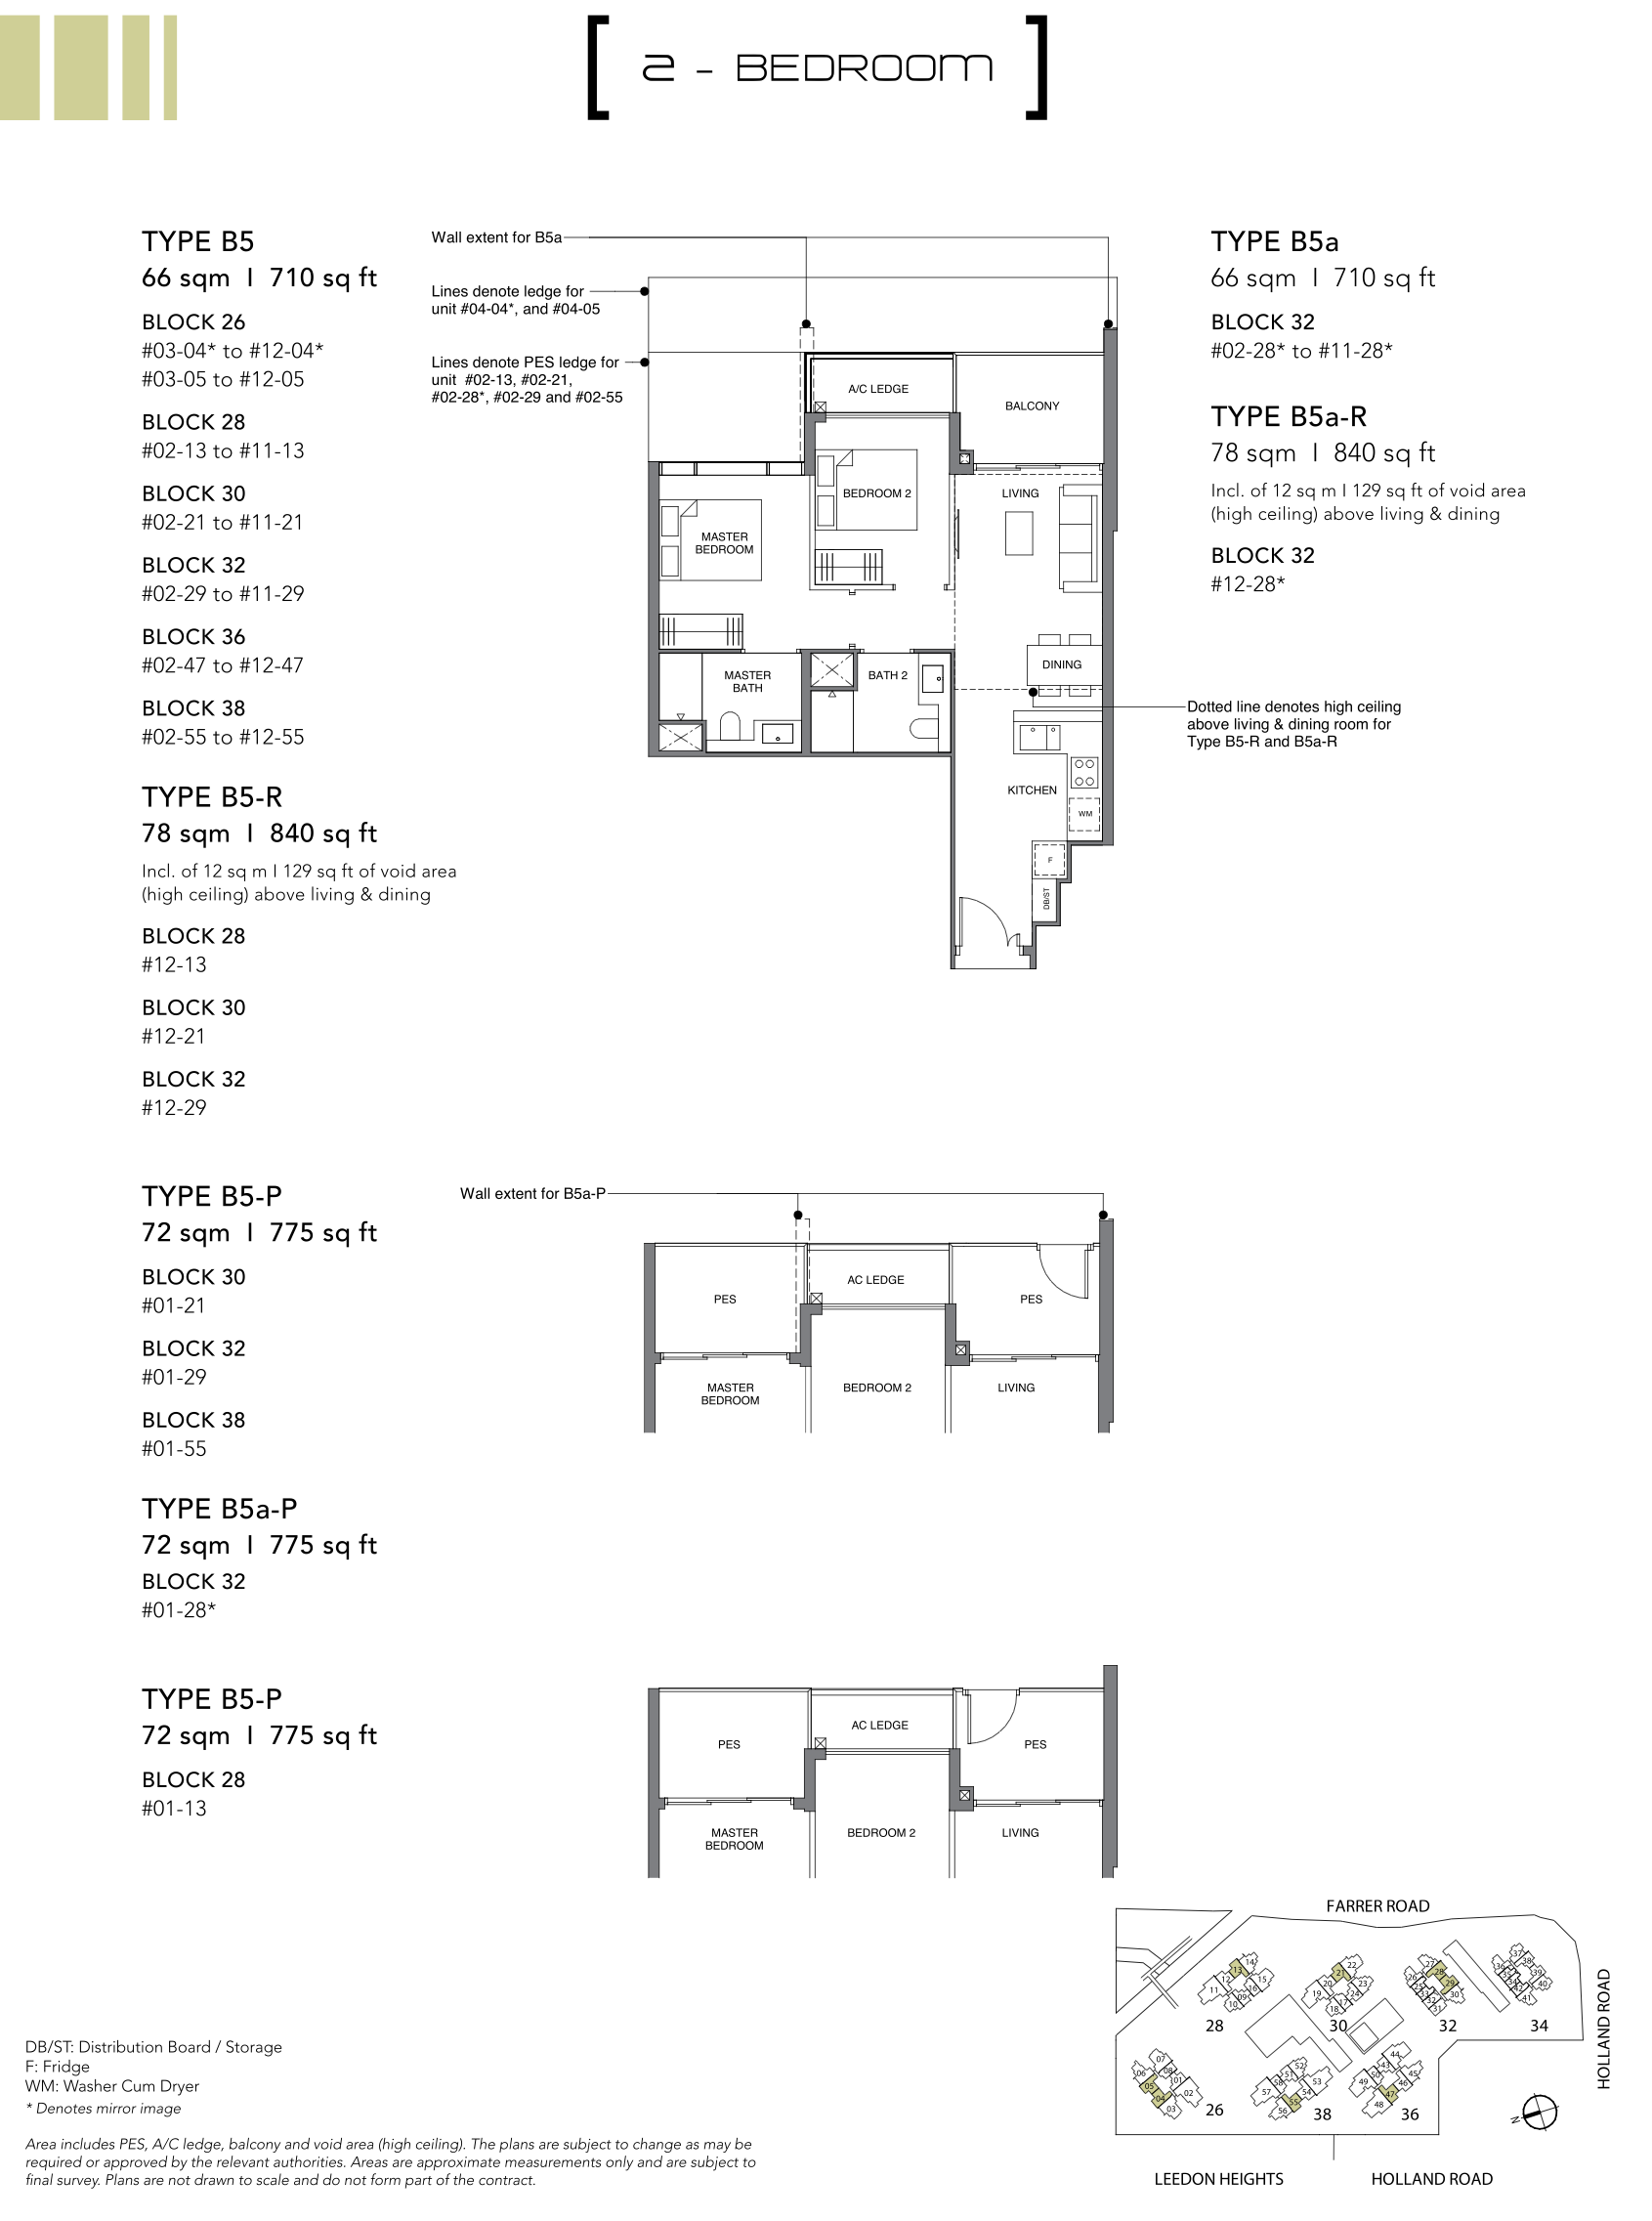 绿墩雅苑公寓户型图 Leedon Green floor plan 2 bedroom b5-b4a